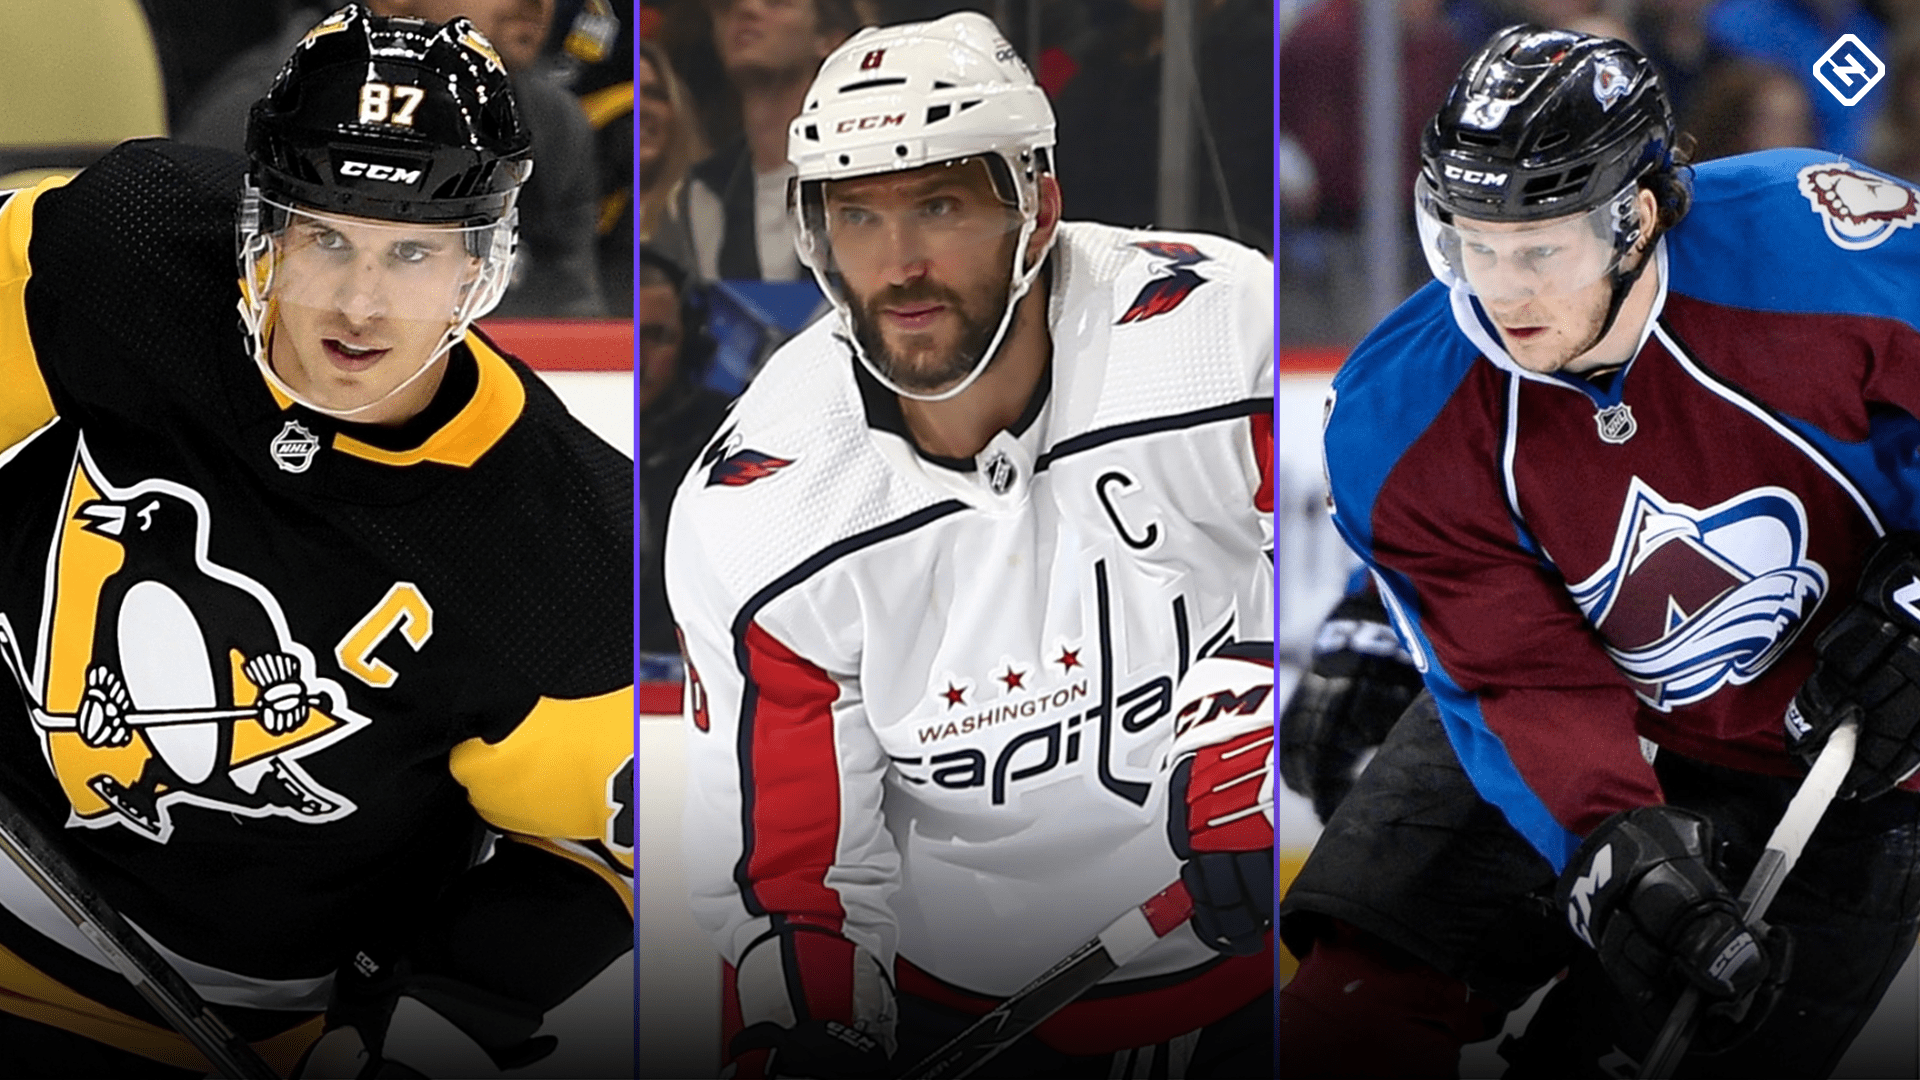 Sidney Crosby, Nathan MacKinnon, Mark Scheifele and more: A look at the NHL's best golfers